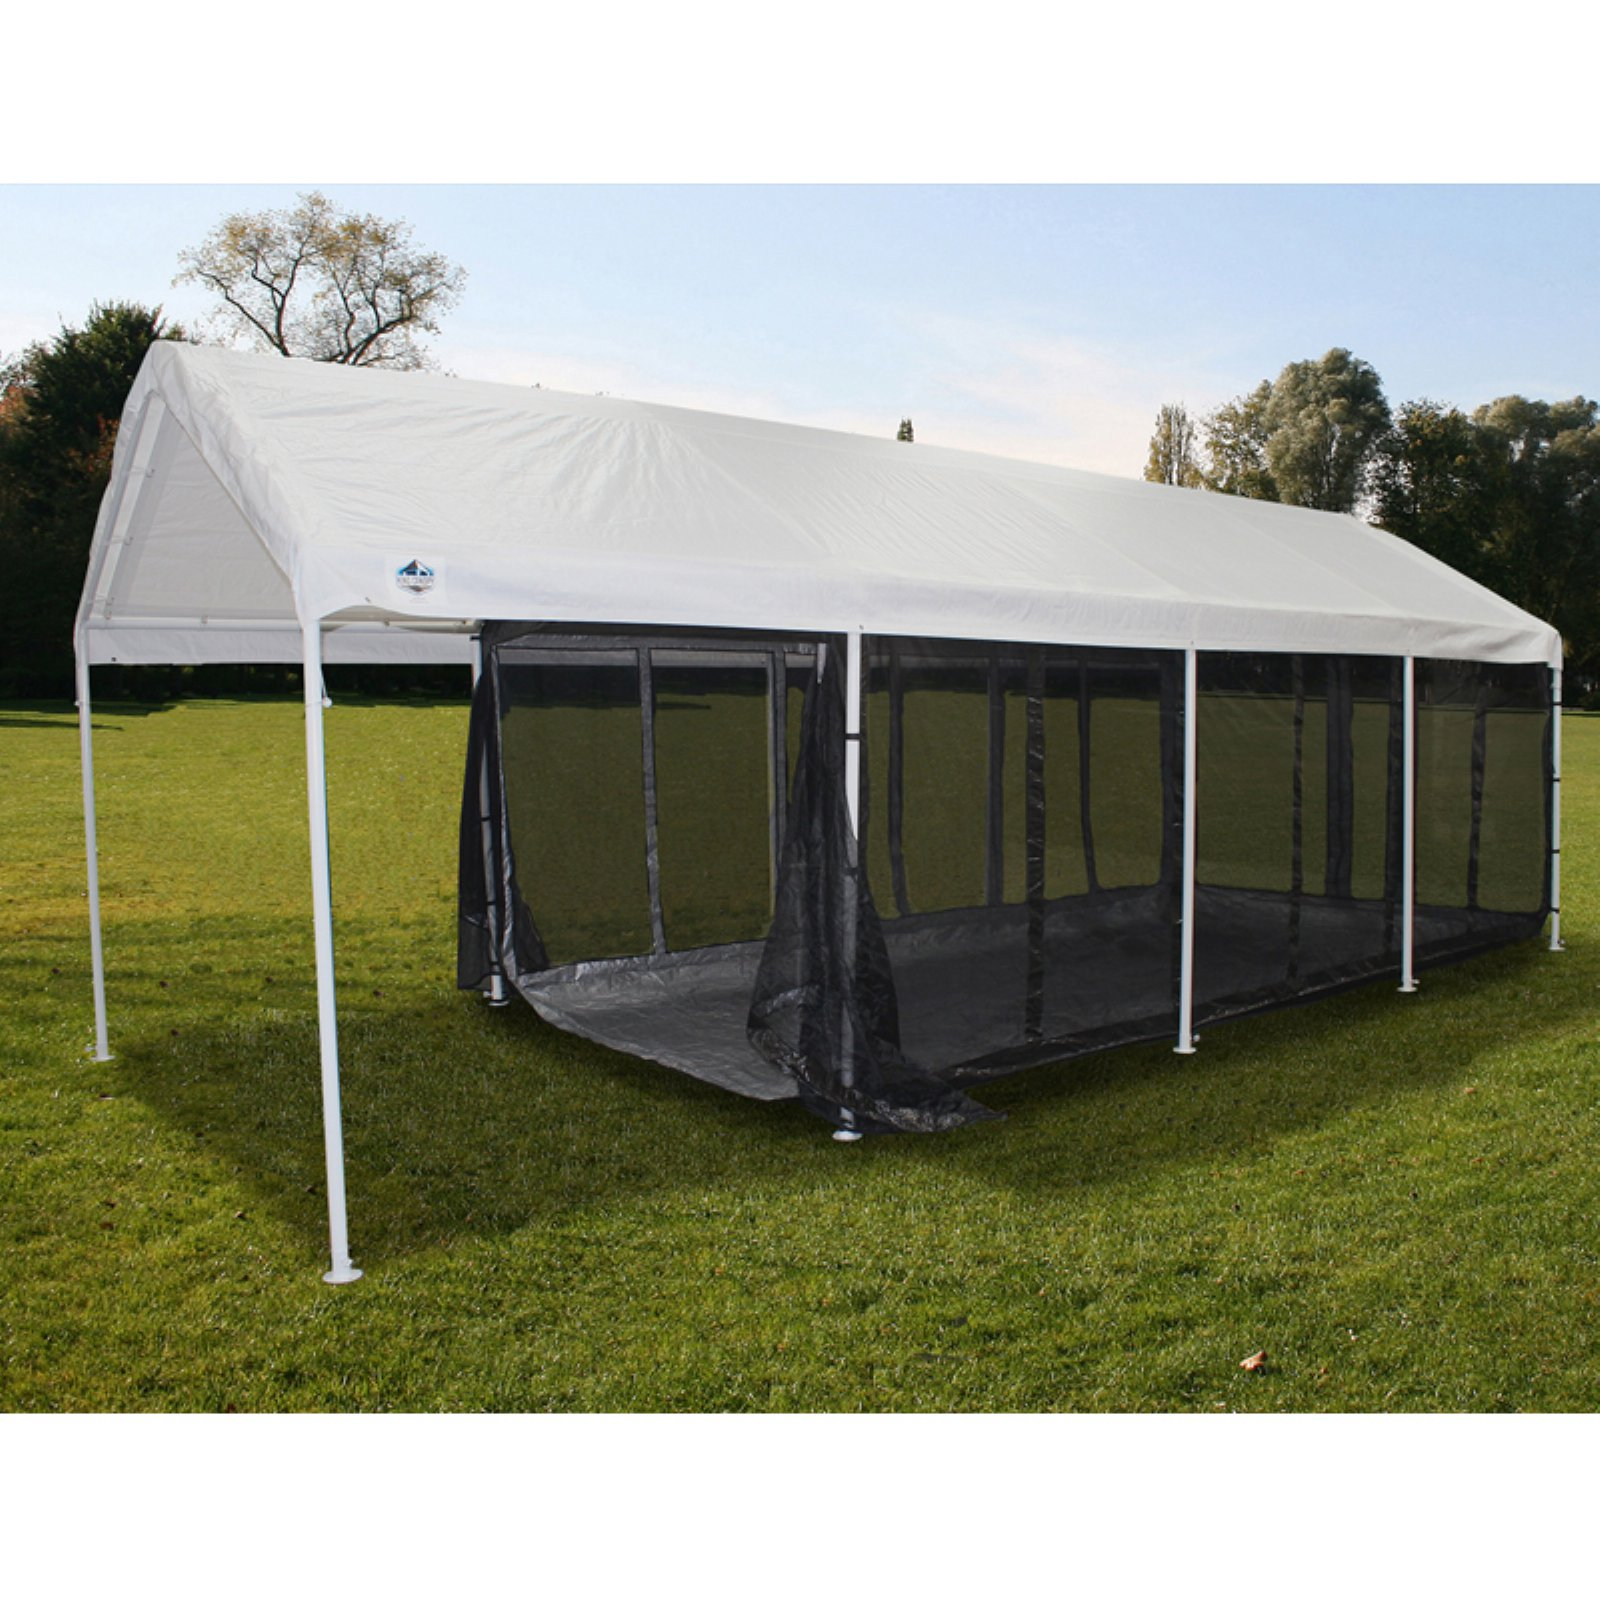 King Canopy 10 x 20 ft. Black Canopy Screen Room with Floor  sc 1 st  Walmart : canopy with screen - memphite.com